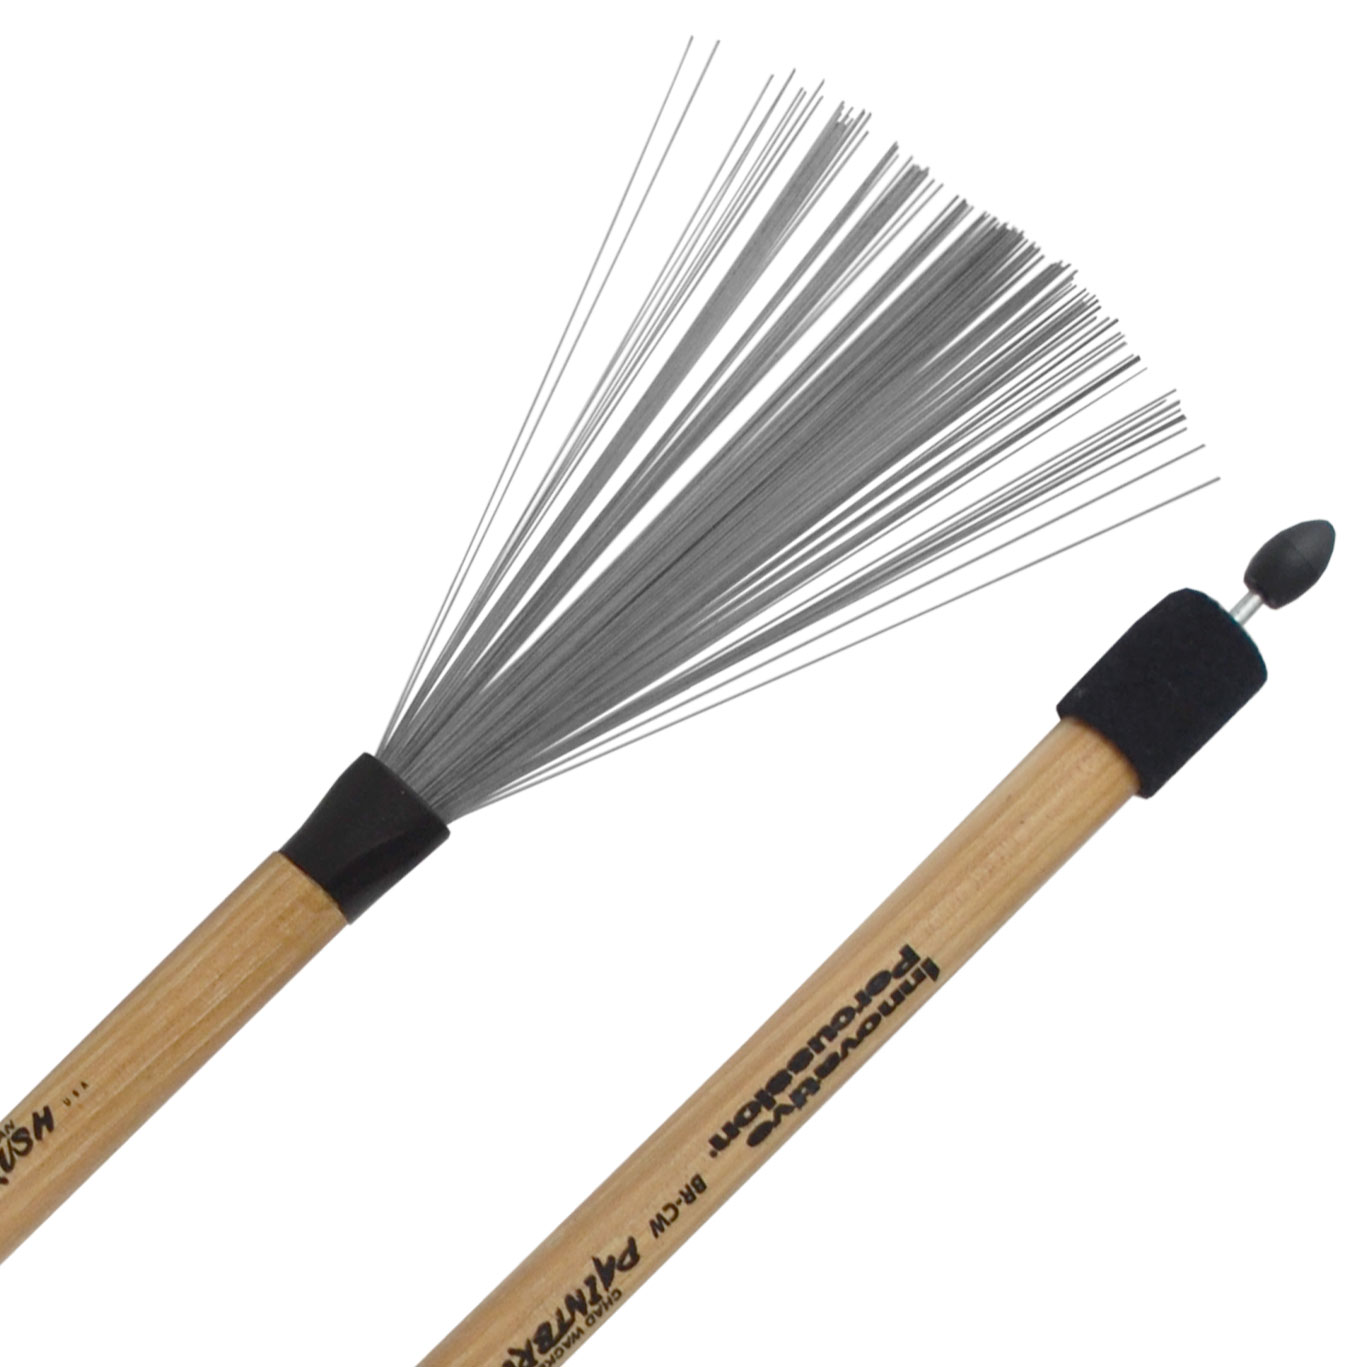 Innovative Percussion Chad Wackerman Paintbrushes